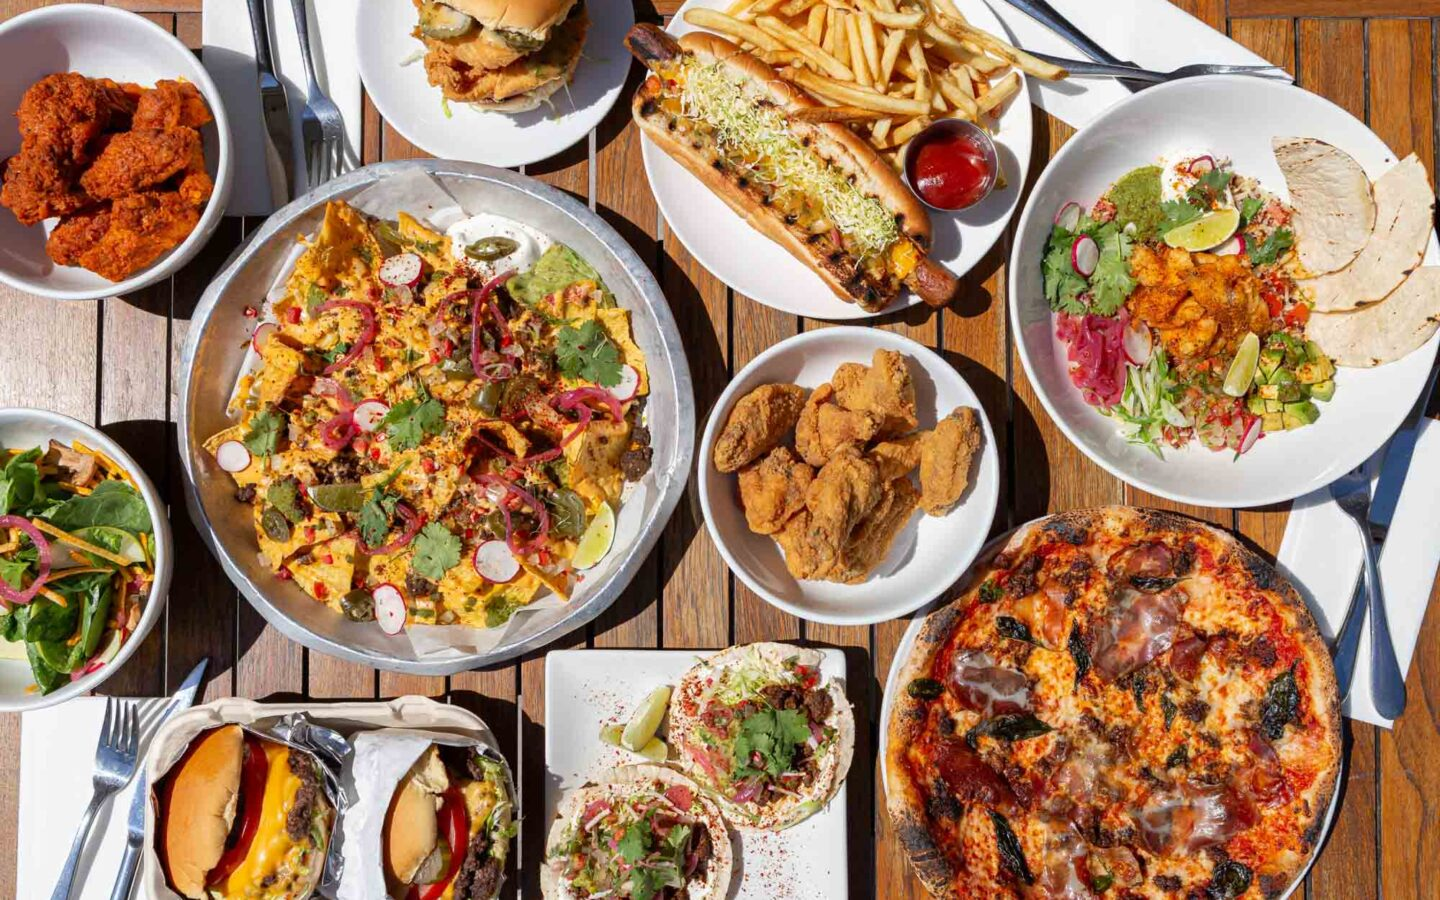 a table filled with various plates of food including nachos, chicken wings, pizza, and hamburgers